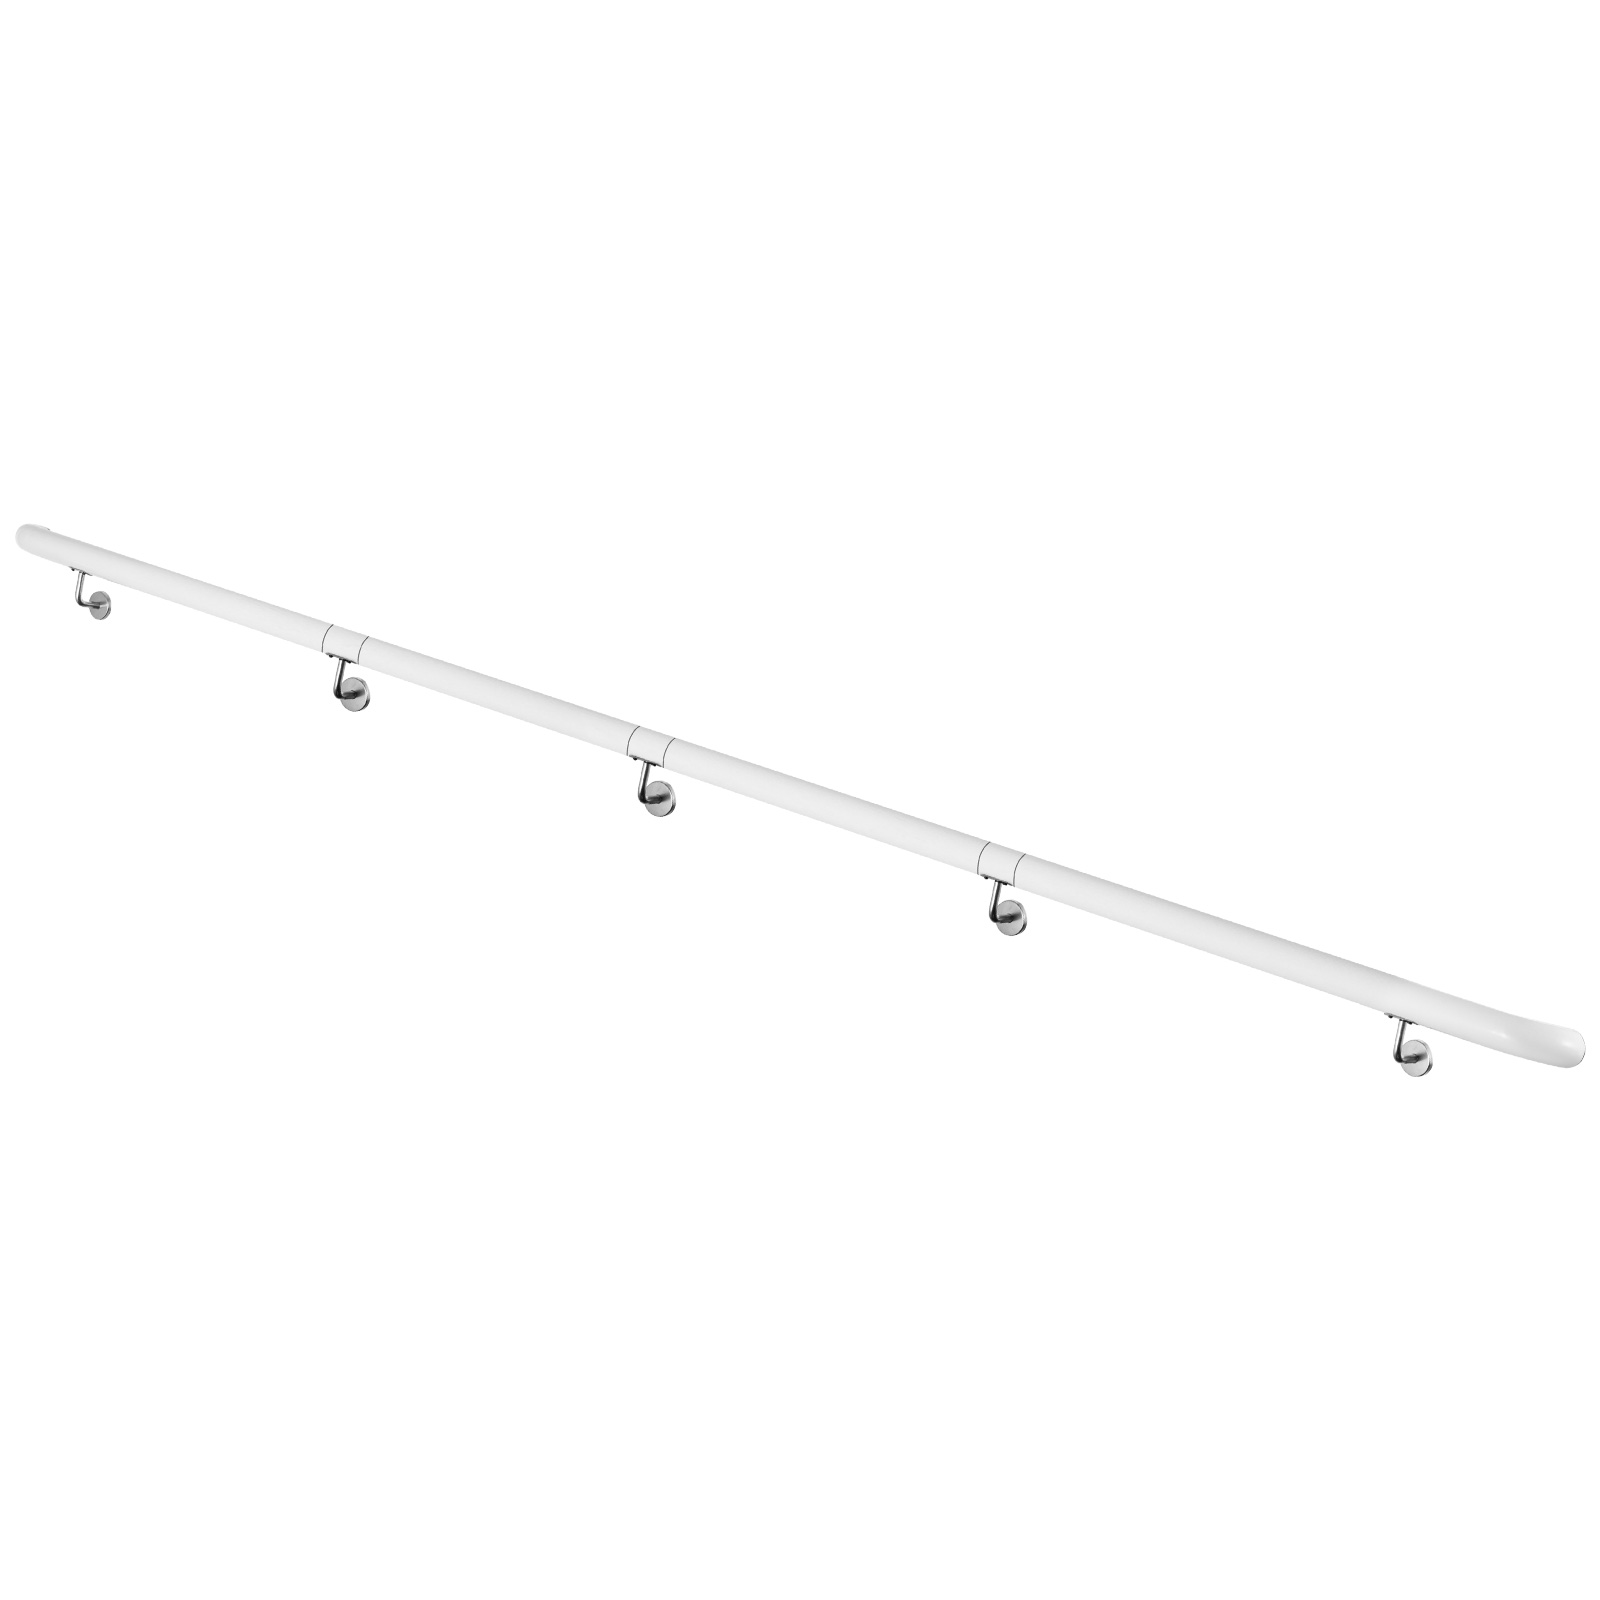 Stair-Handrail-Stair-Rail-Aluminum-Indoor-Handrail-for-Stairs-3-16-039-White-200lbs thumbnail 143